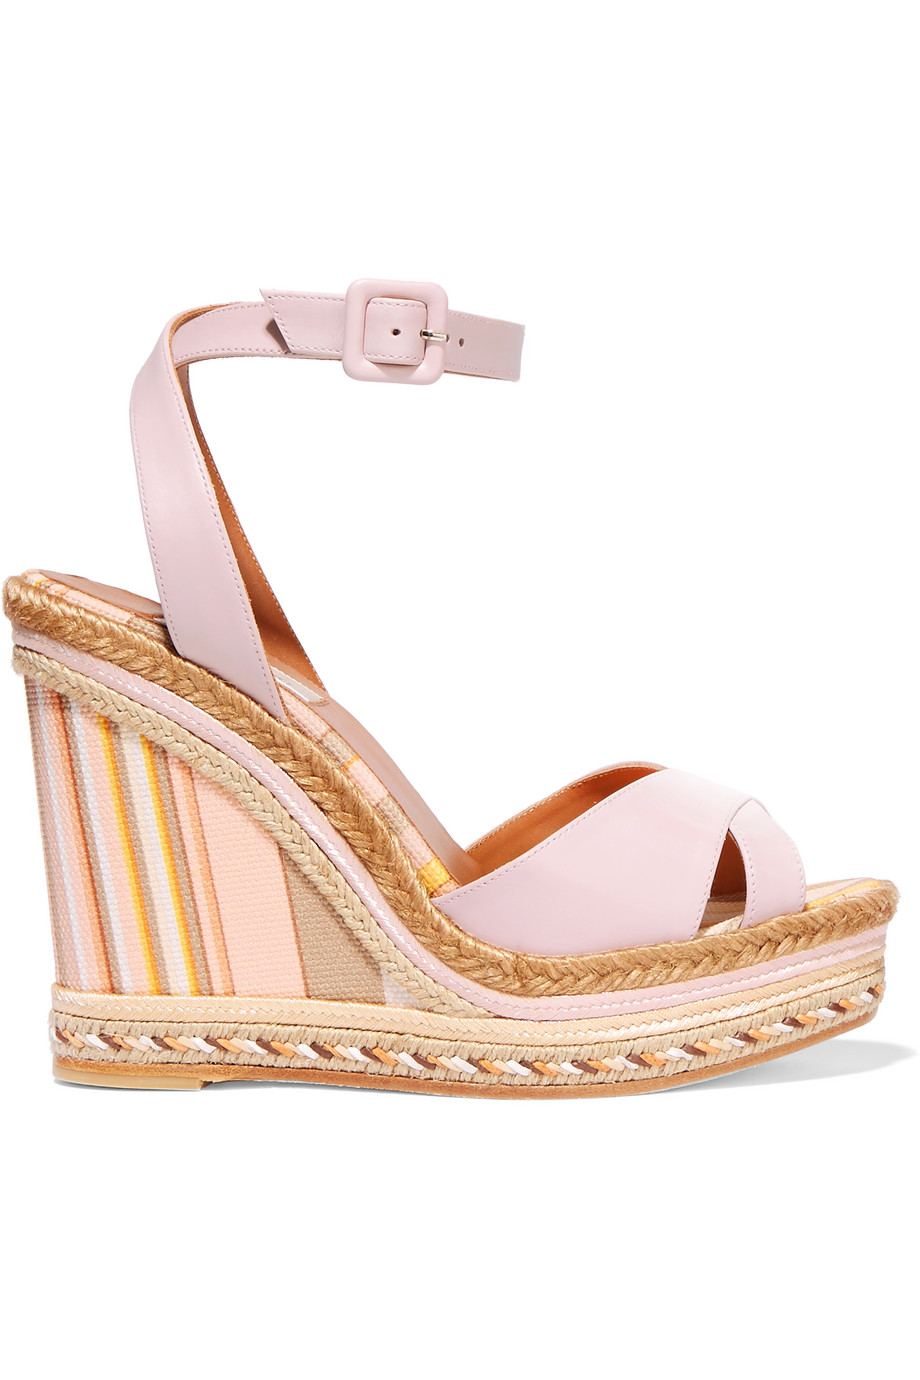 Valentino Leather and Striped Canvas Espadrille Wedge Sandals, Blush, Women's US Size: 4.5, Size: 35